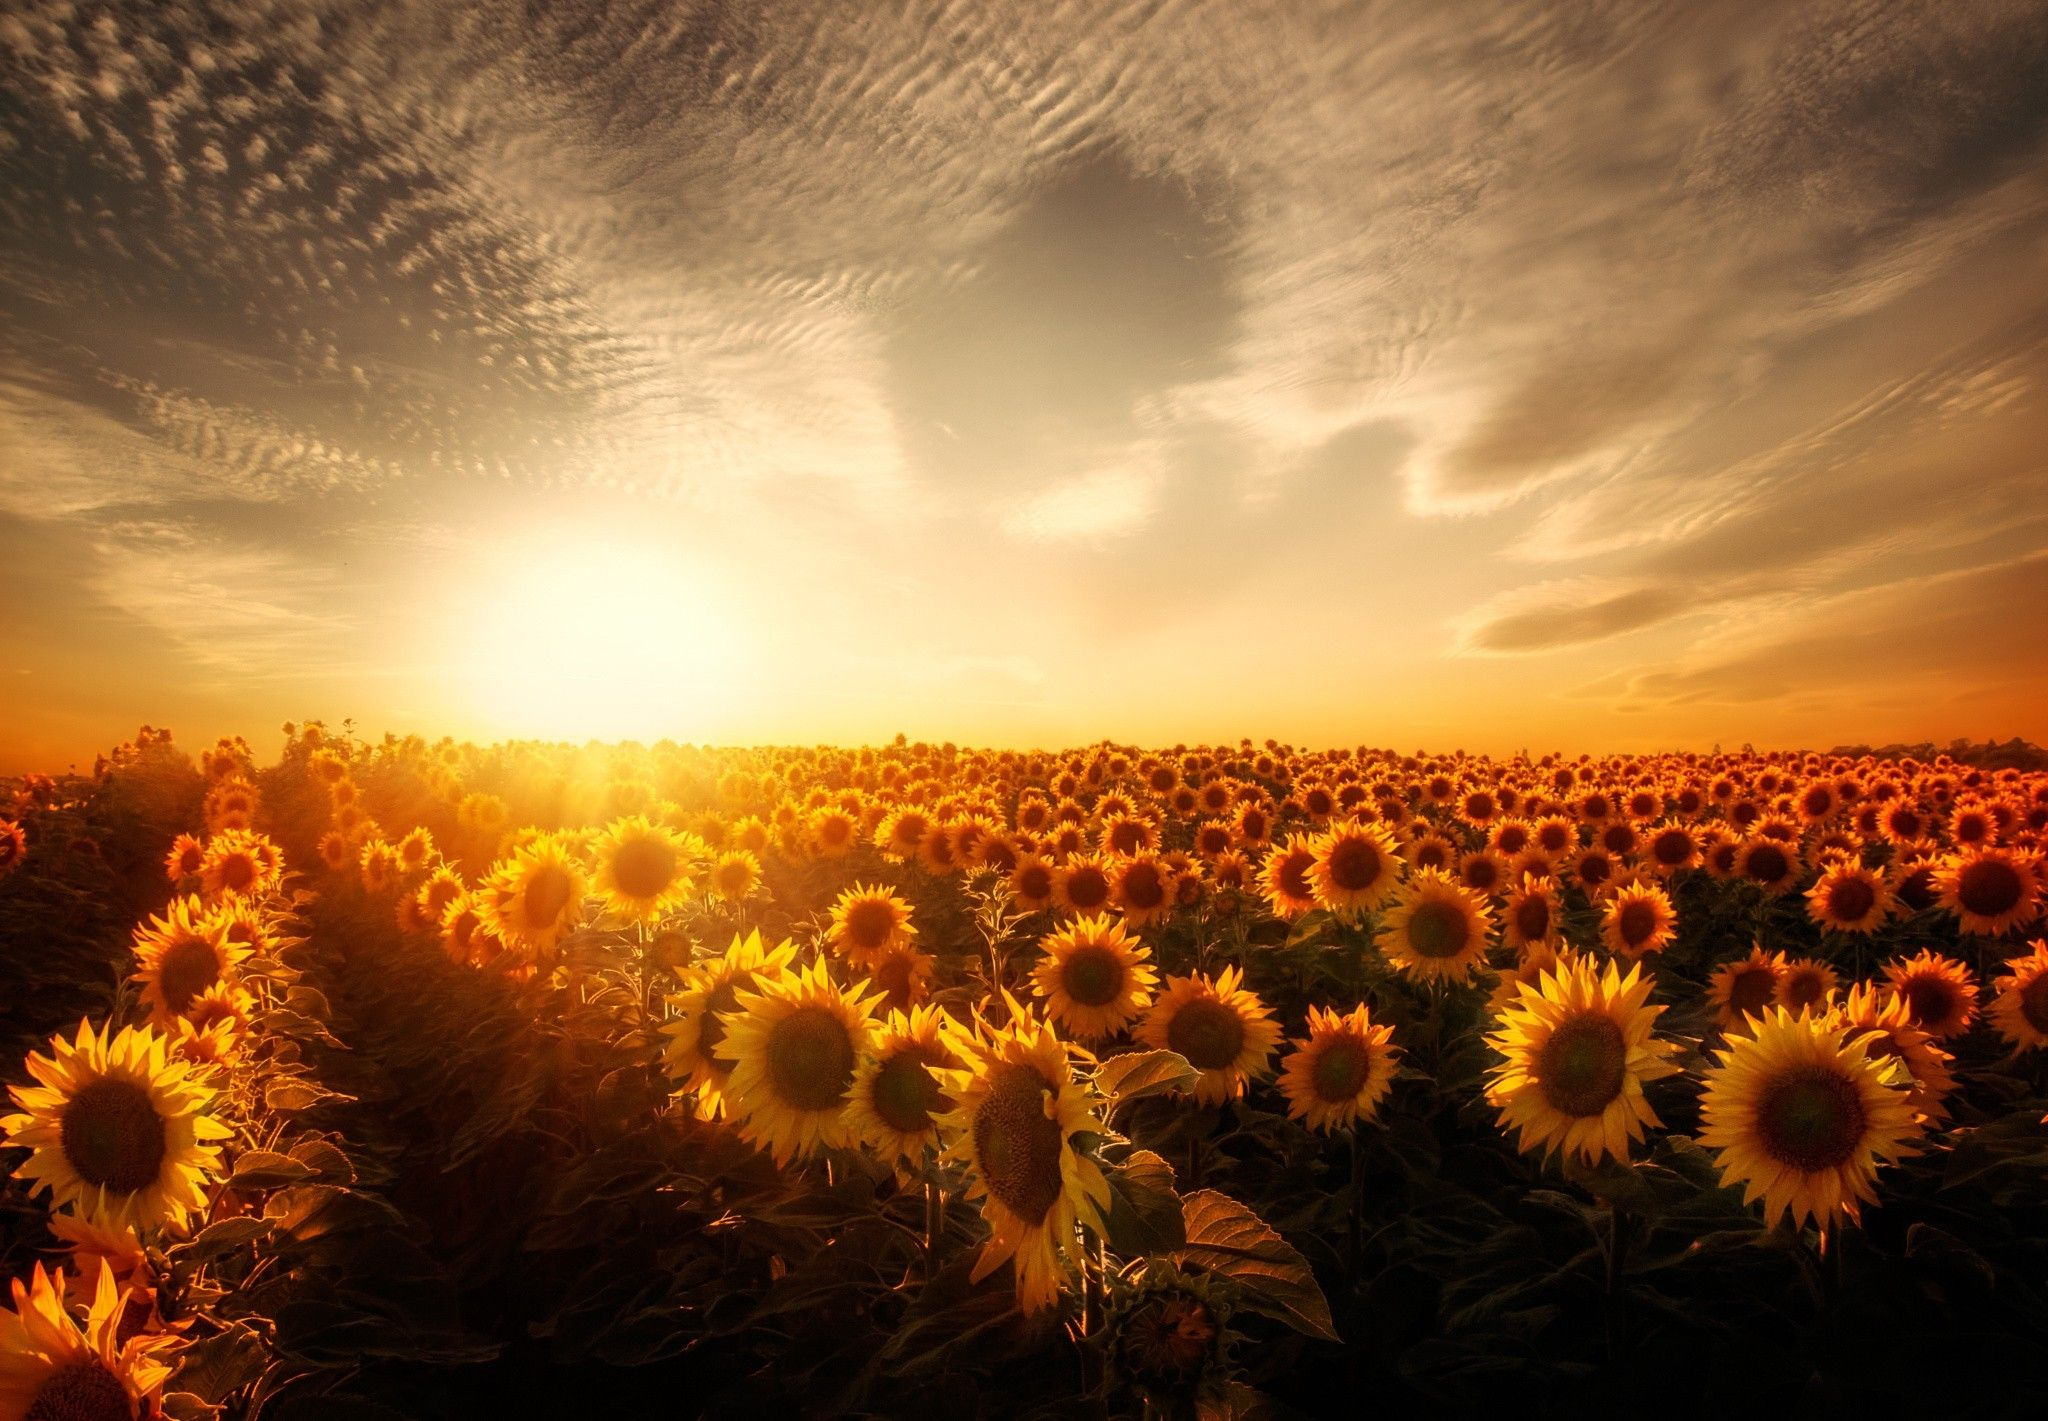 Vintage Sunflower Sunset Wallpapers Top Free Vintage Sunflower Sunset Backgrounds Wallpaperaccess